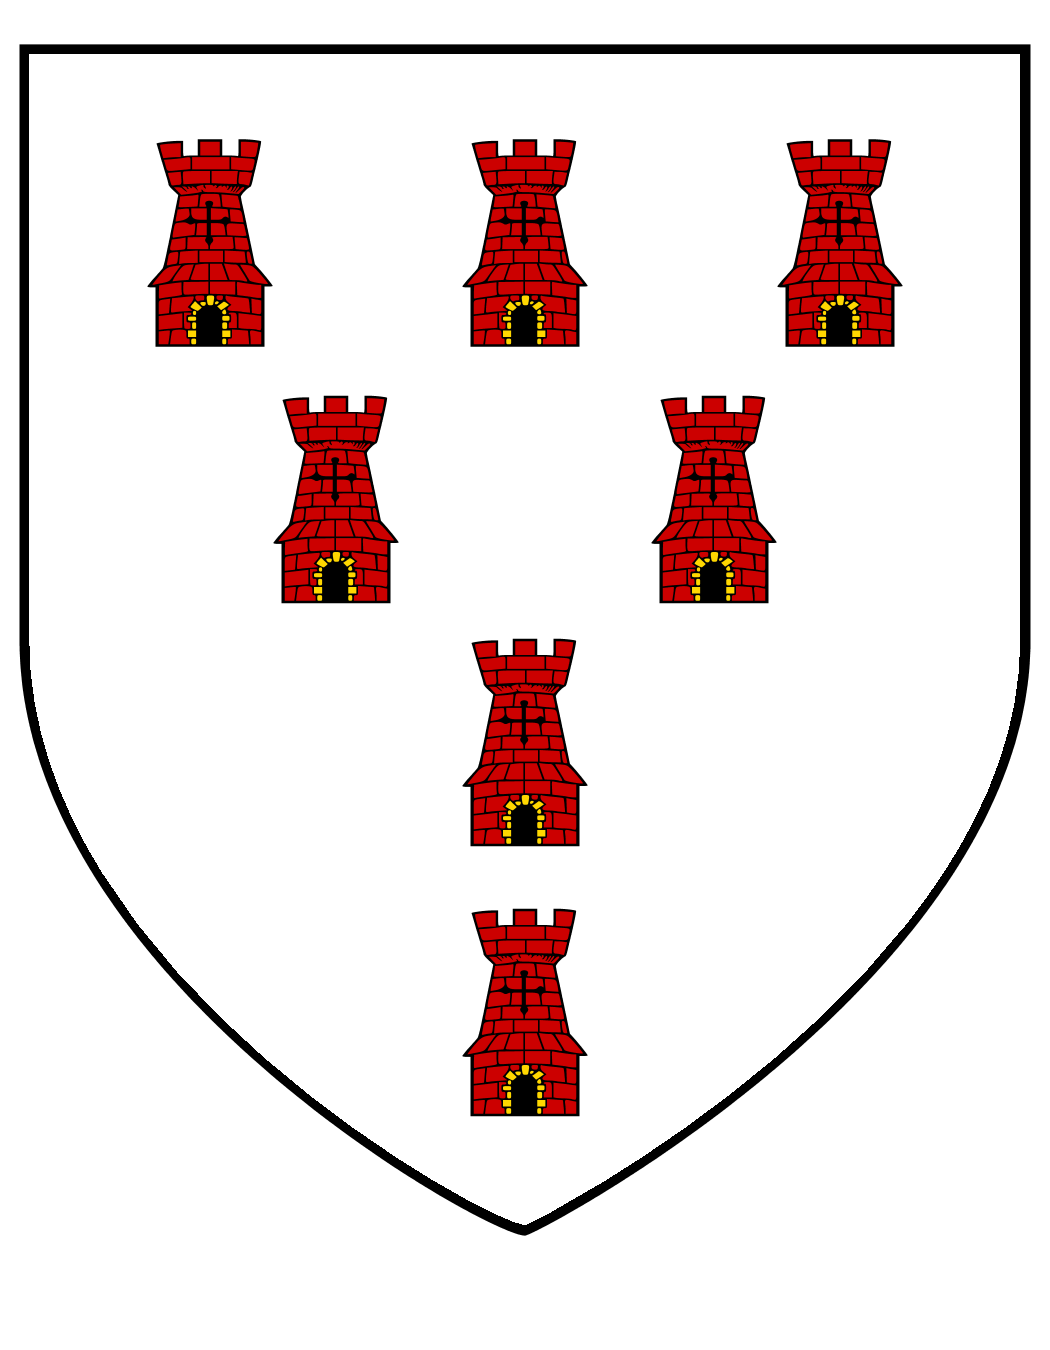 Council_of_Ashes_coat_of_arms.png